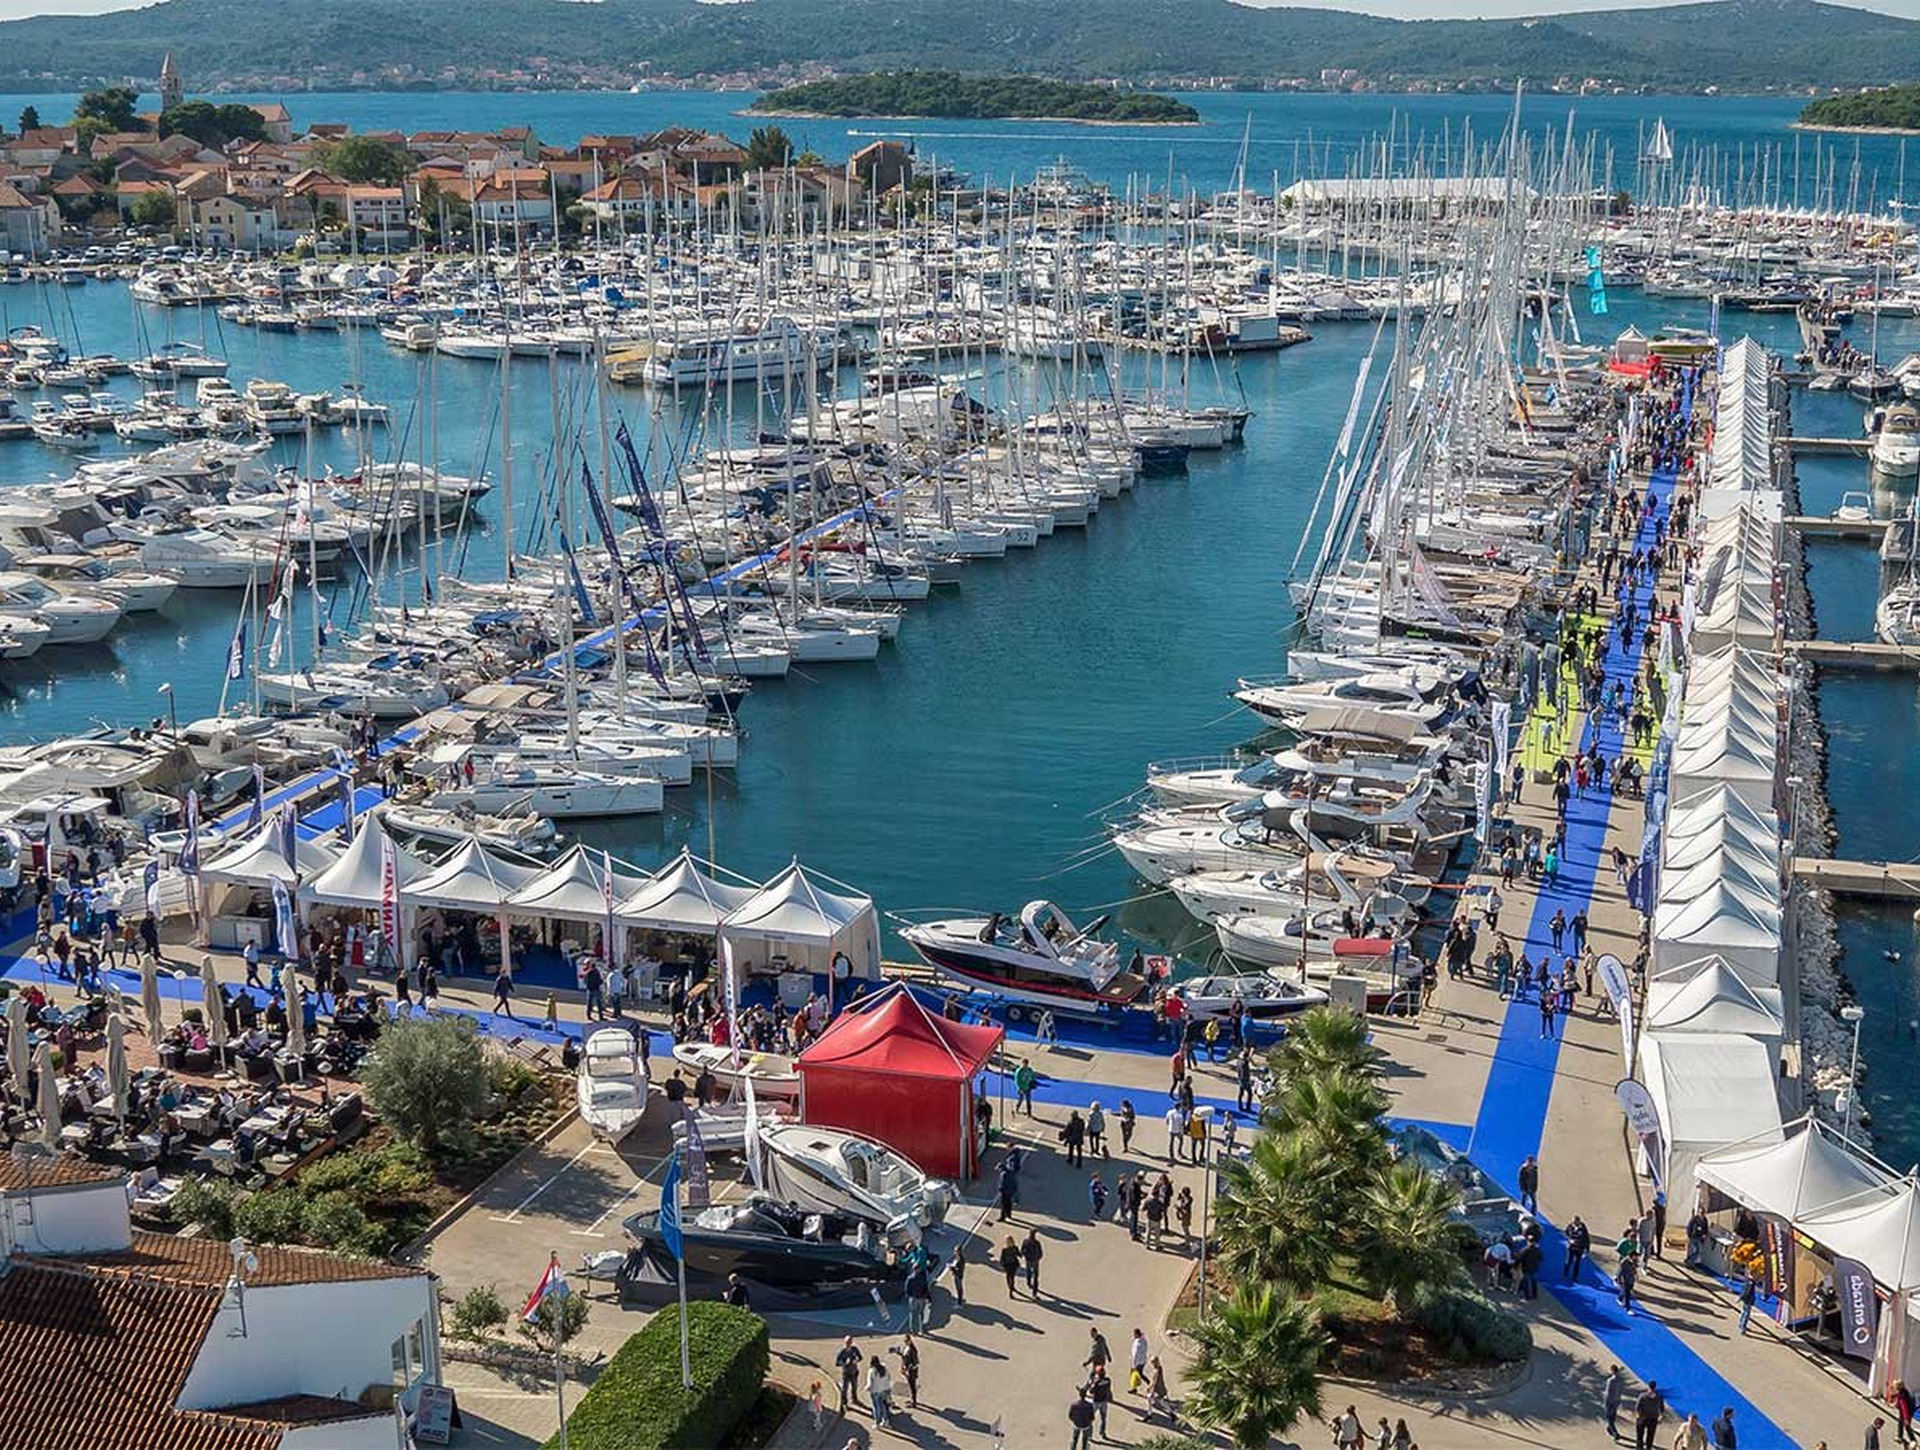 VISIT US ON BIOGRAD BOAT SHOW FROM THE 17TH TO THE 20TH OF OCTOBER